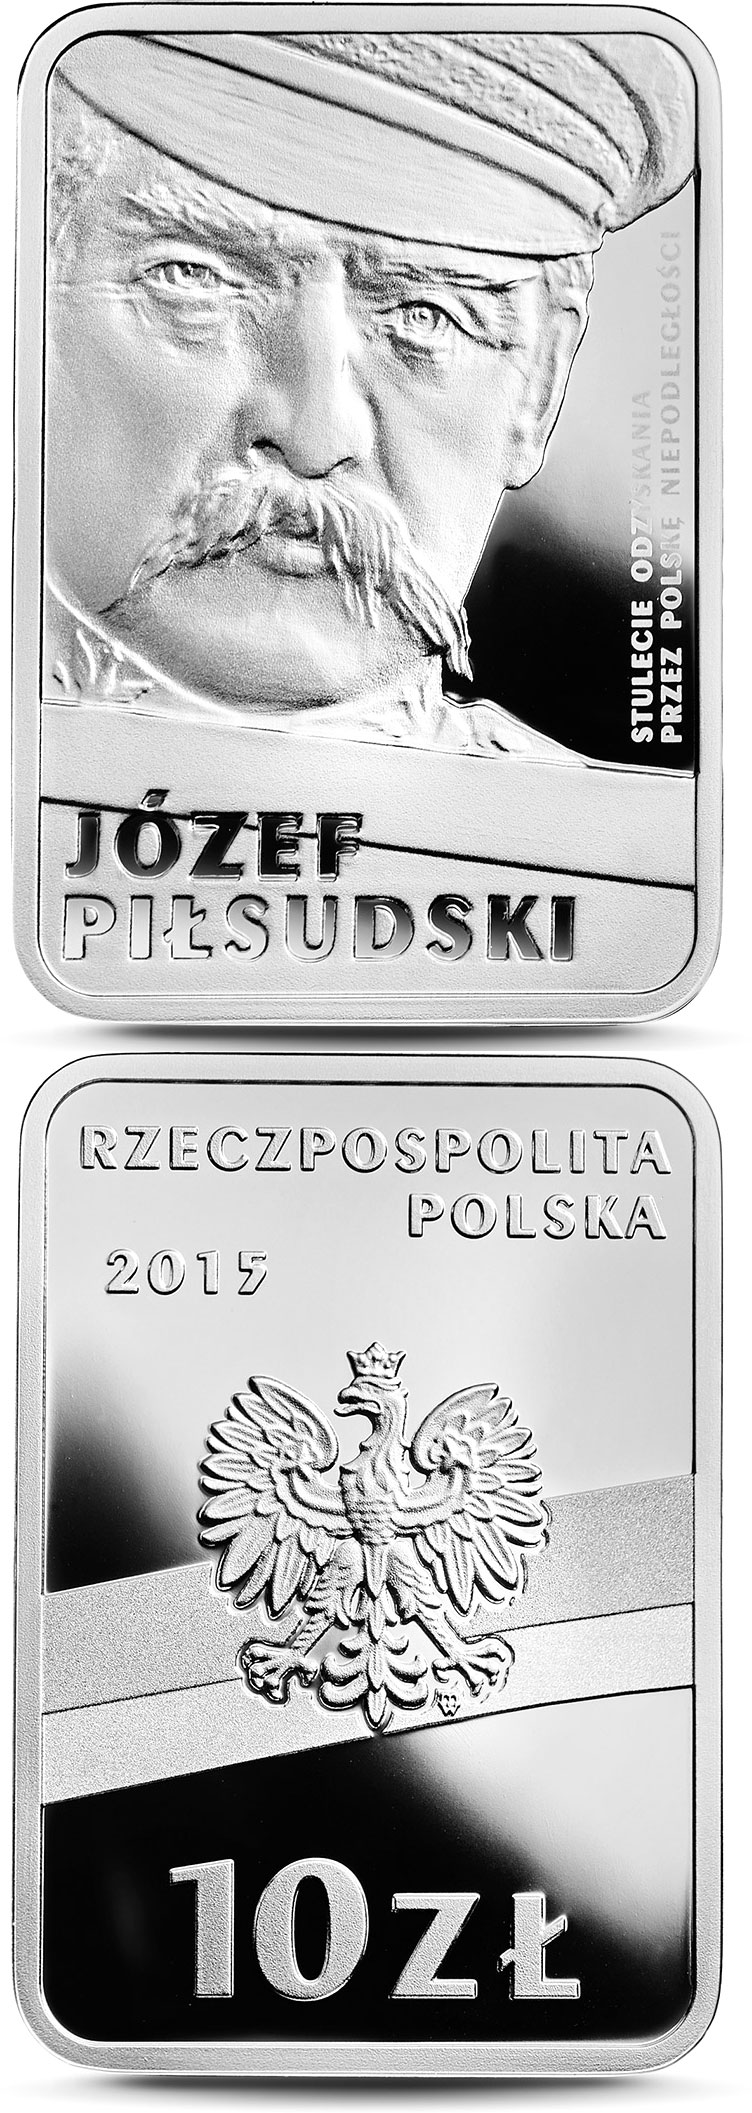 10 zloty 100th Anniversary of Regaining Independence by Poland – Józef Piłsudski - 2015 - Poland